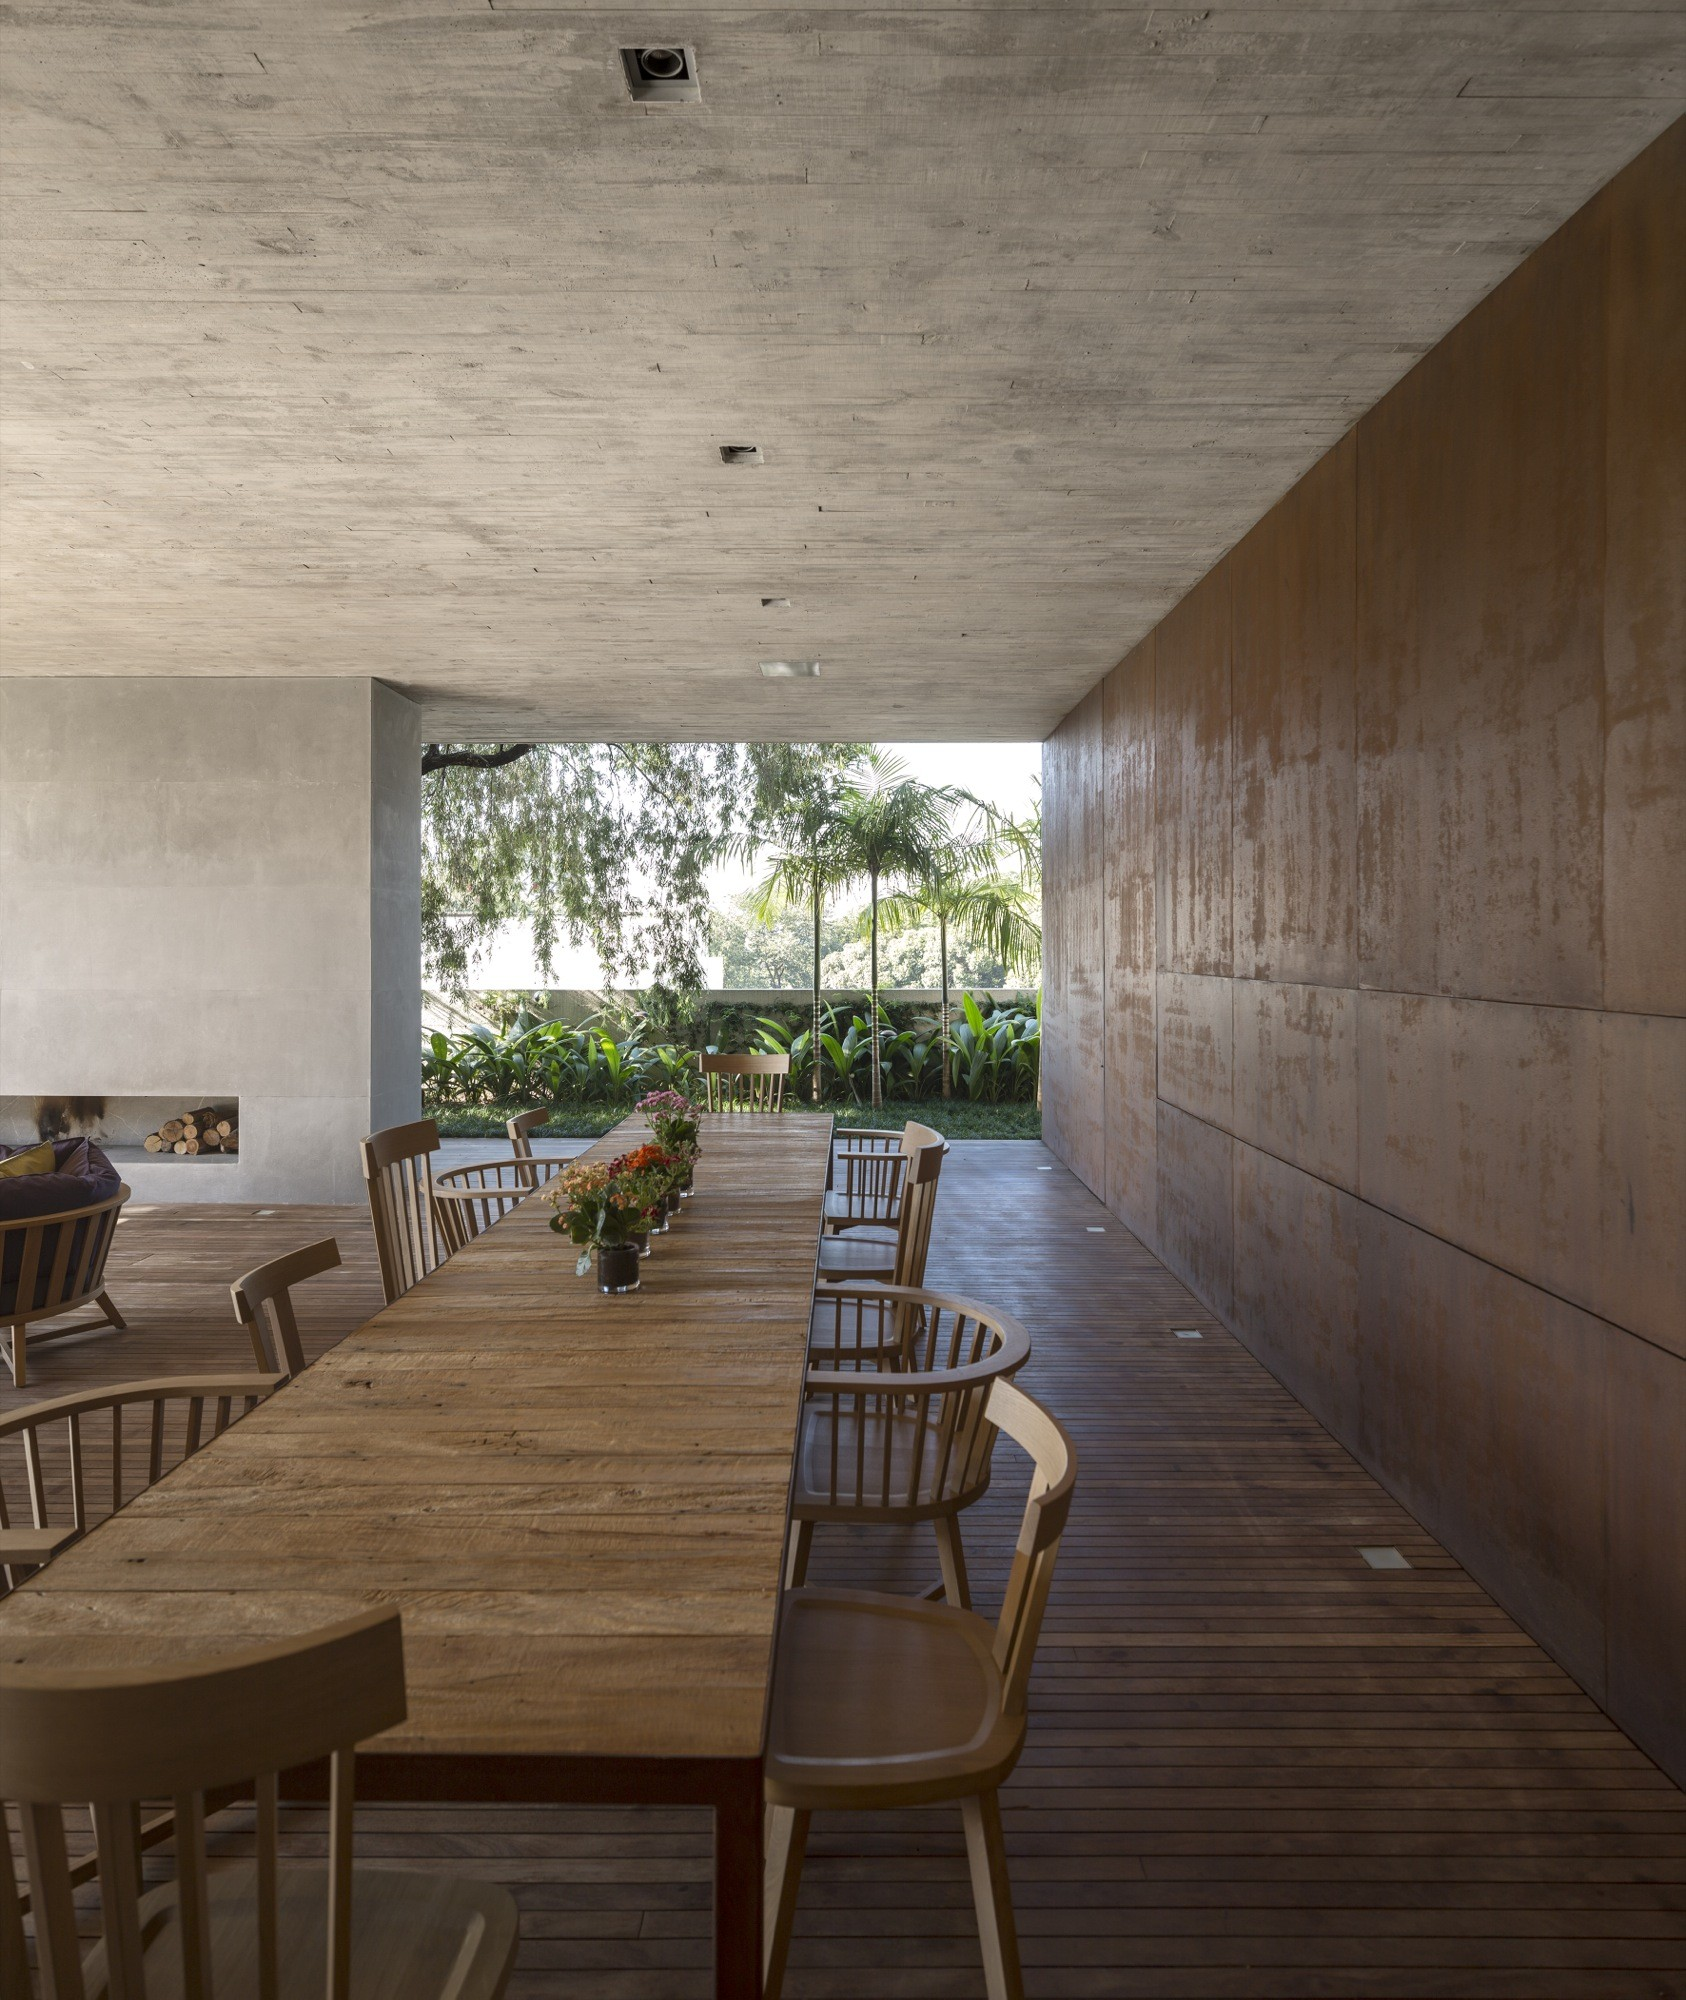 P House gallery of the p house / studio mk27 - marcio kogan + lair reis - 19